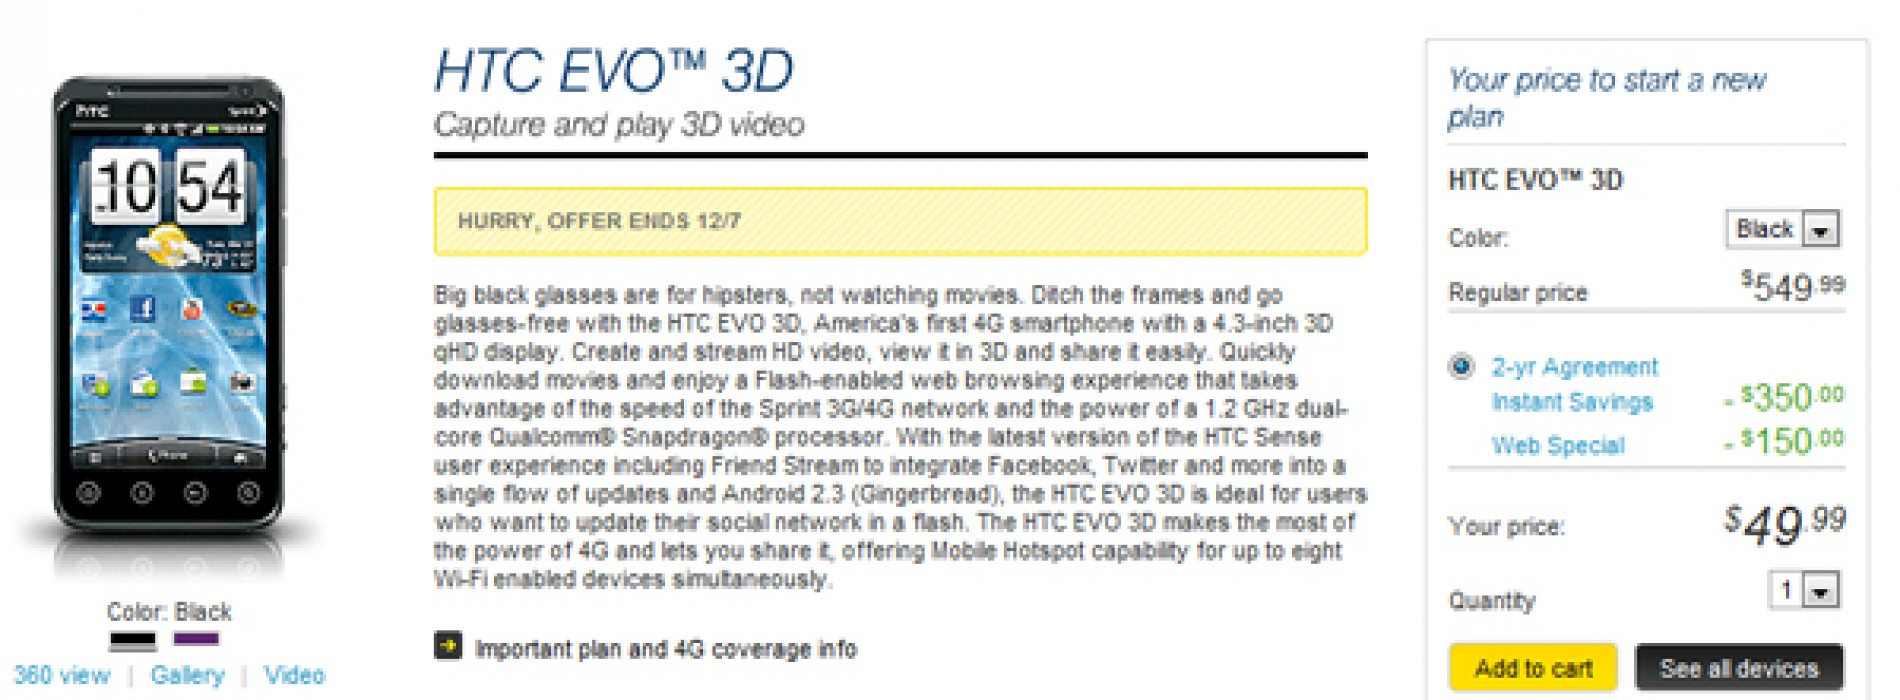 Sprint offering HTC EVO 3D for $49.99 today only [Deal Alert]